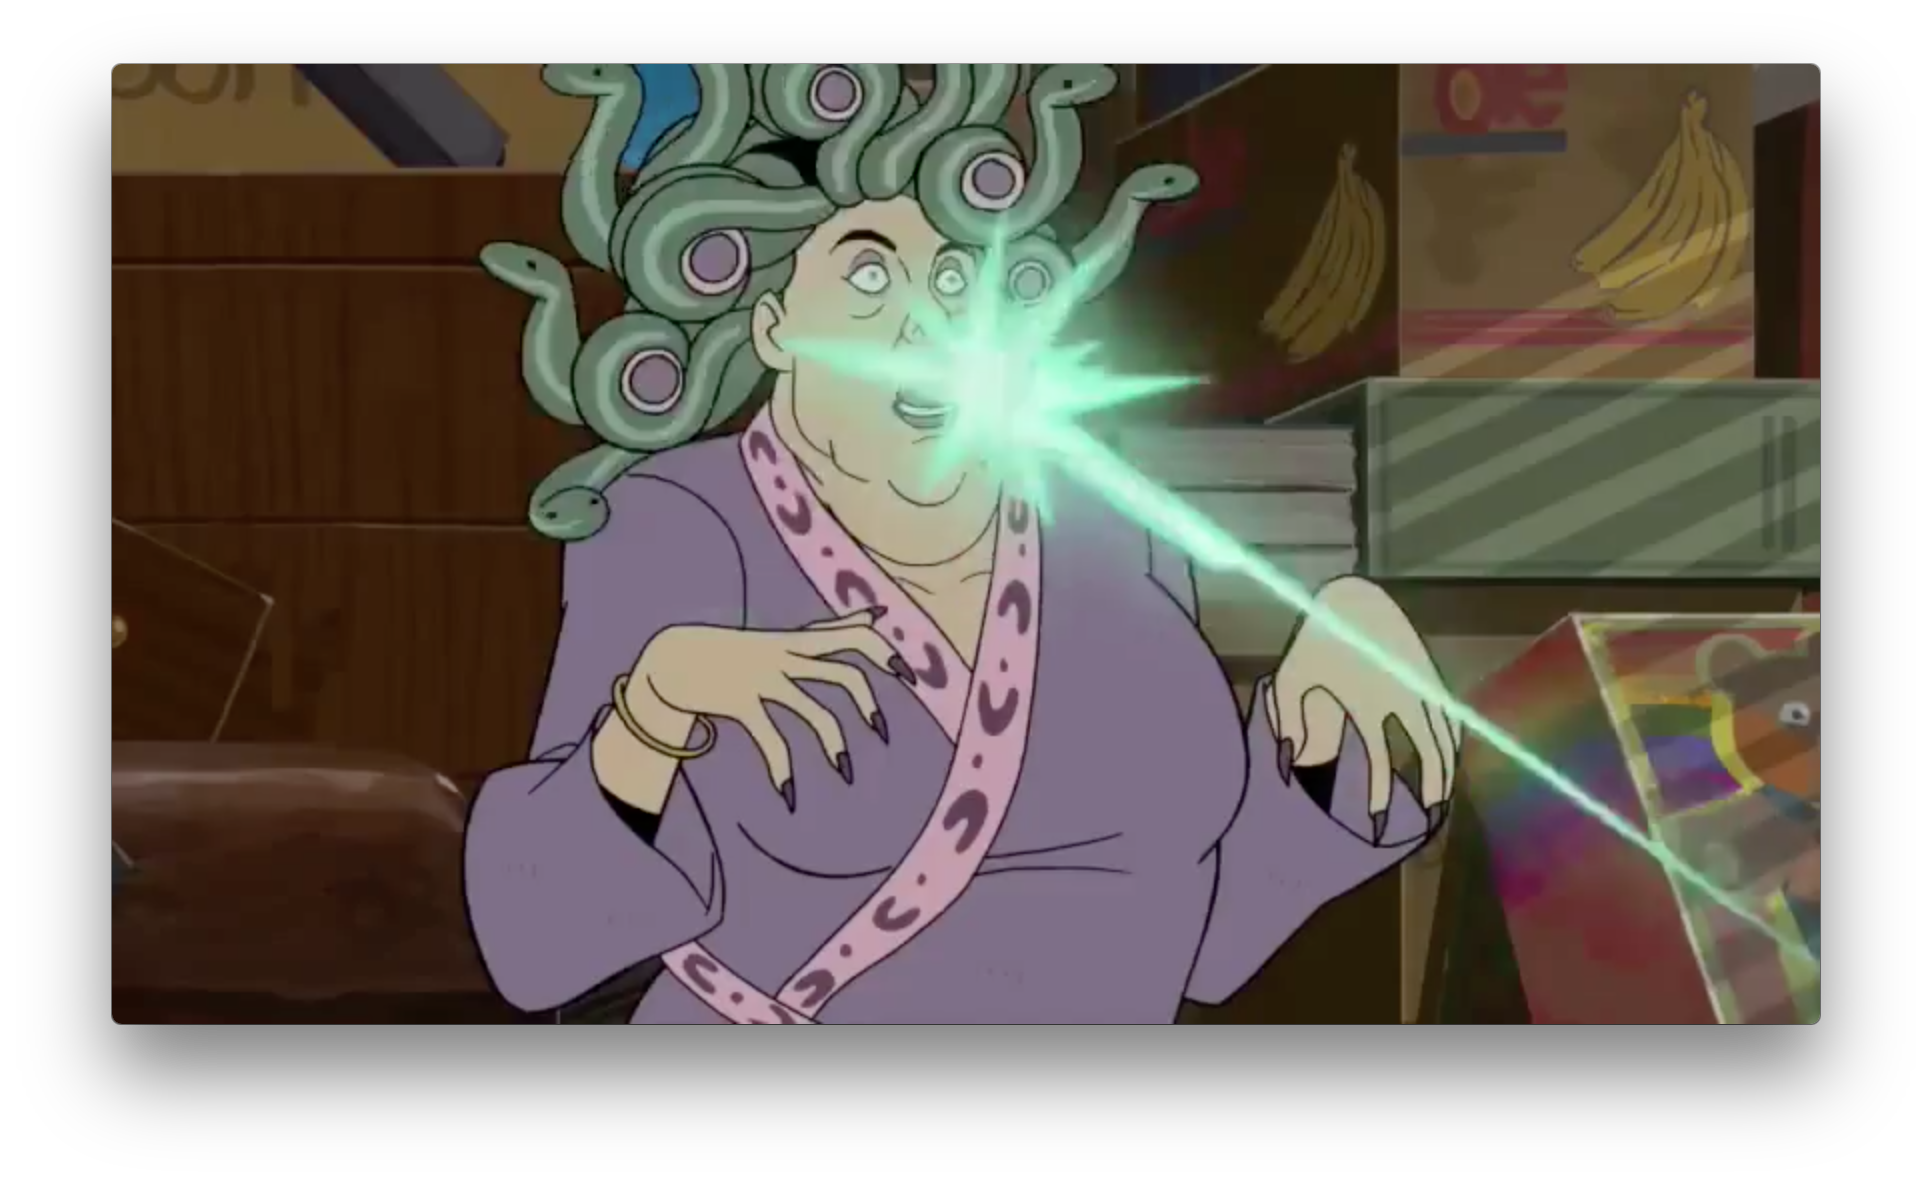 Another new character, a medusa, gets a a green laser to the face. The boxes show us this is also in the Monarch's brownstone. So this character is likely with Gary in the shot seen in the epilogue with the same green laser, unless there's a shapeshifter or something.